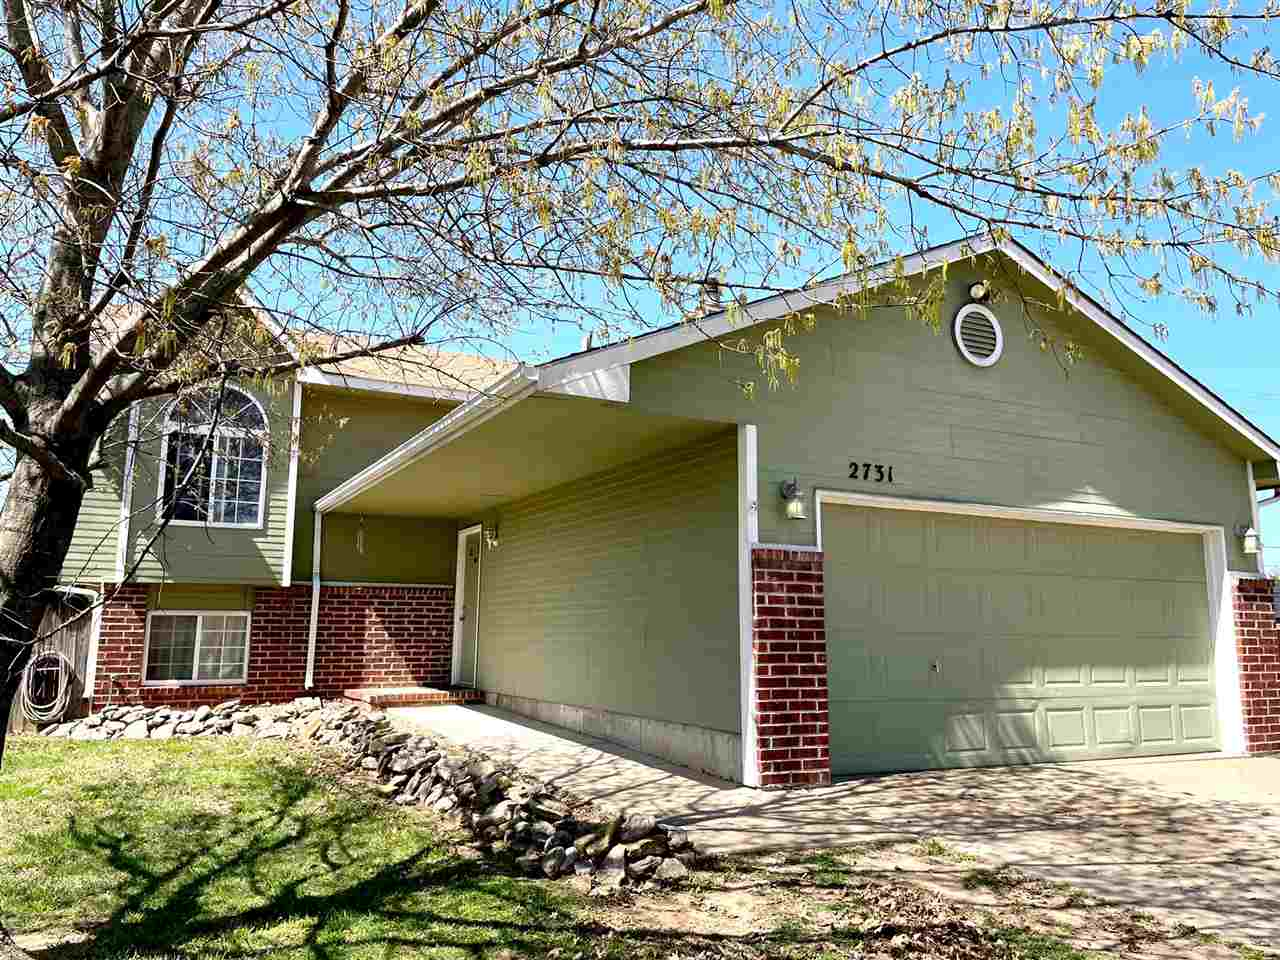 Great Value and one you won't want to miss with 4 bedrooms, 2 full baths, 2 car garage with almost 1